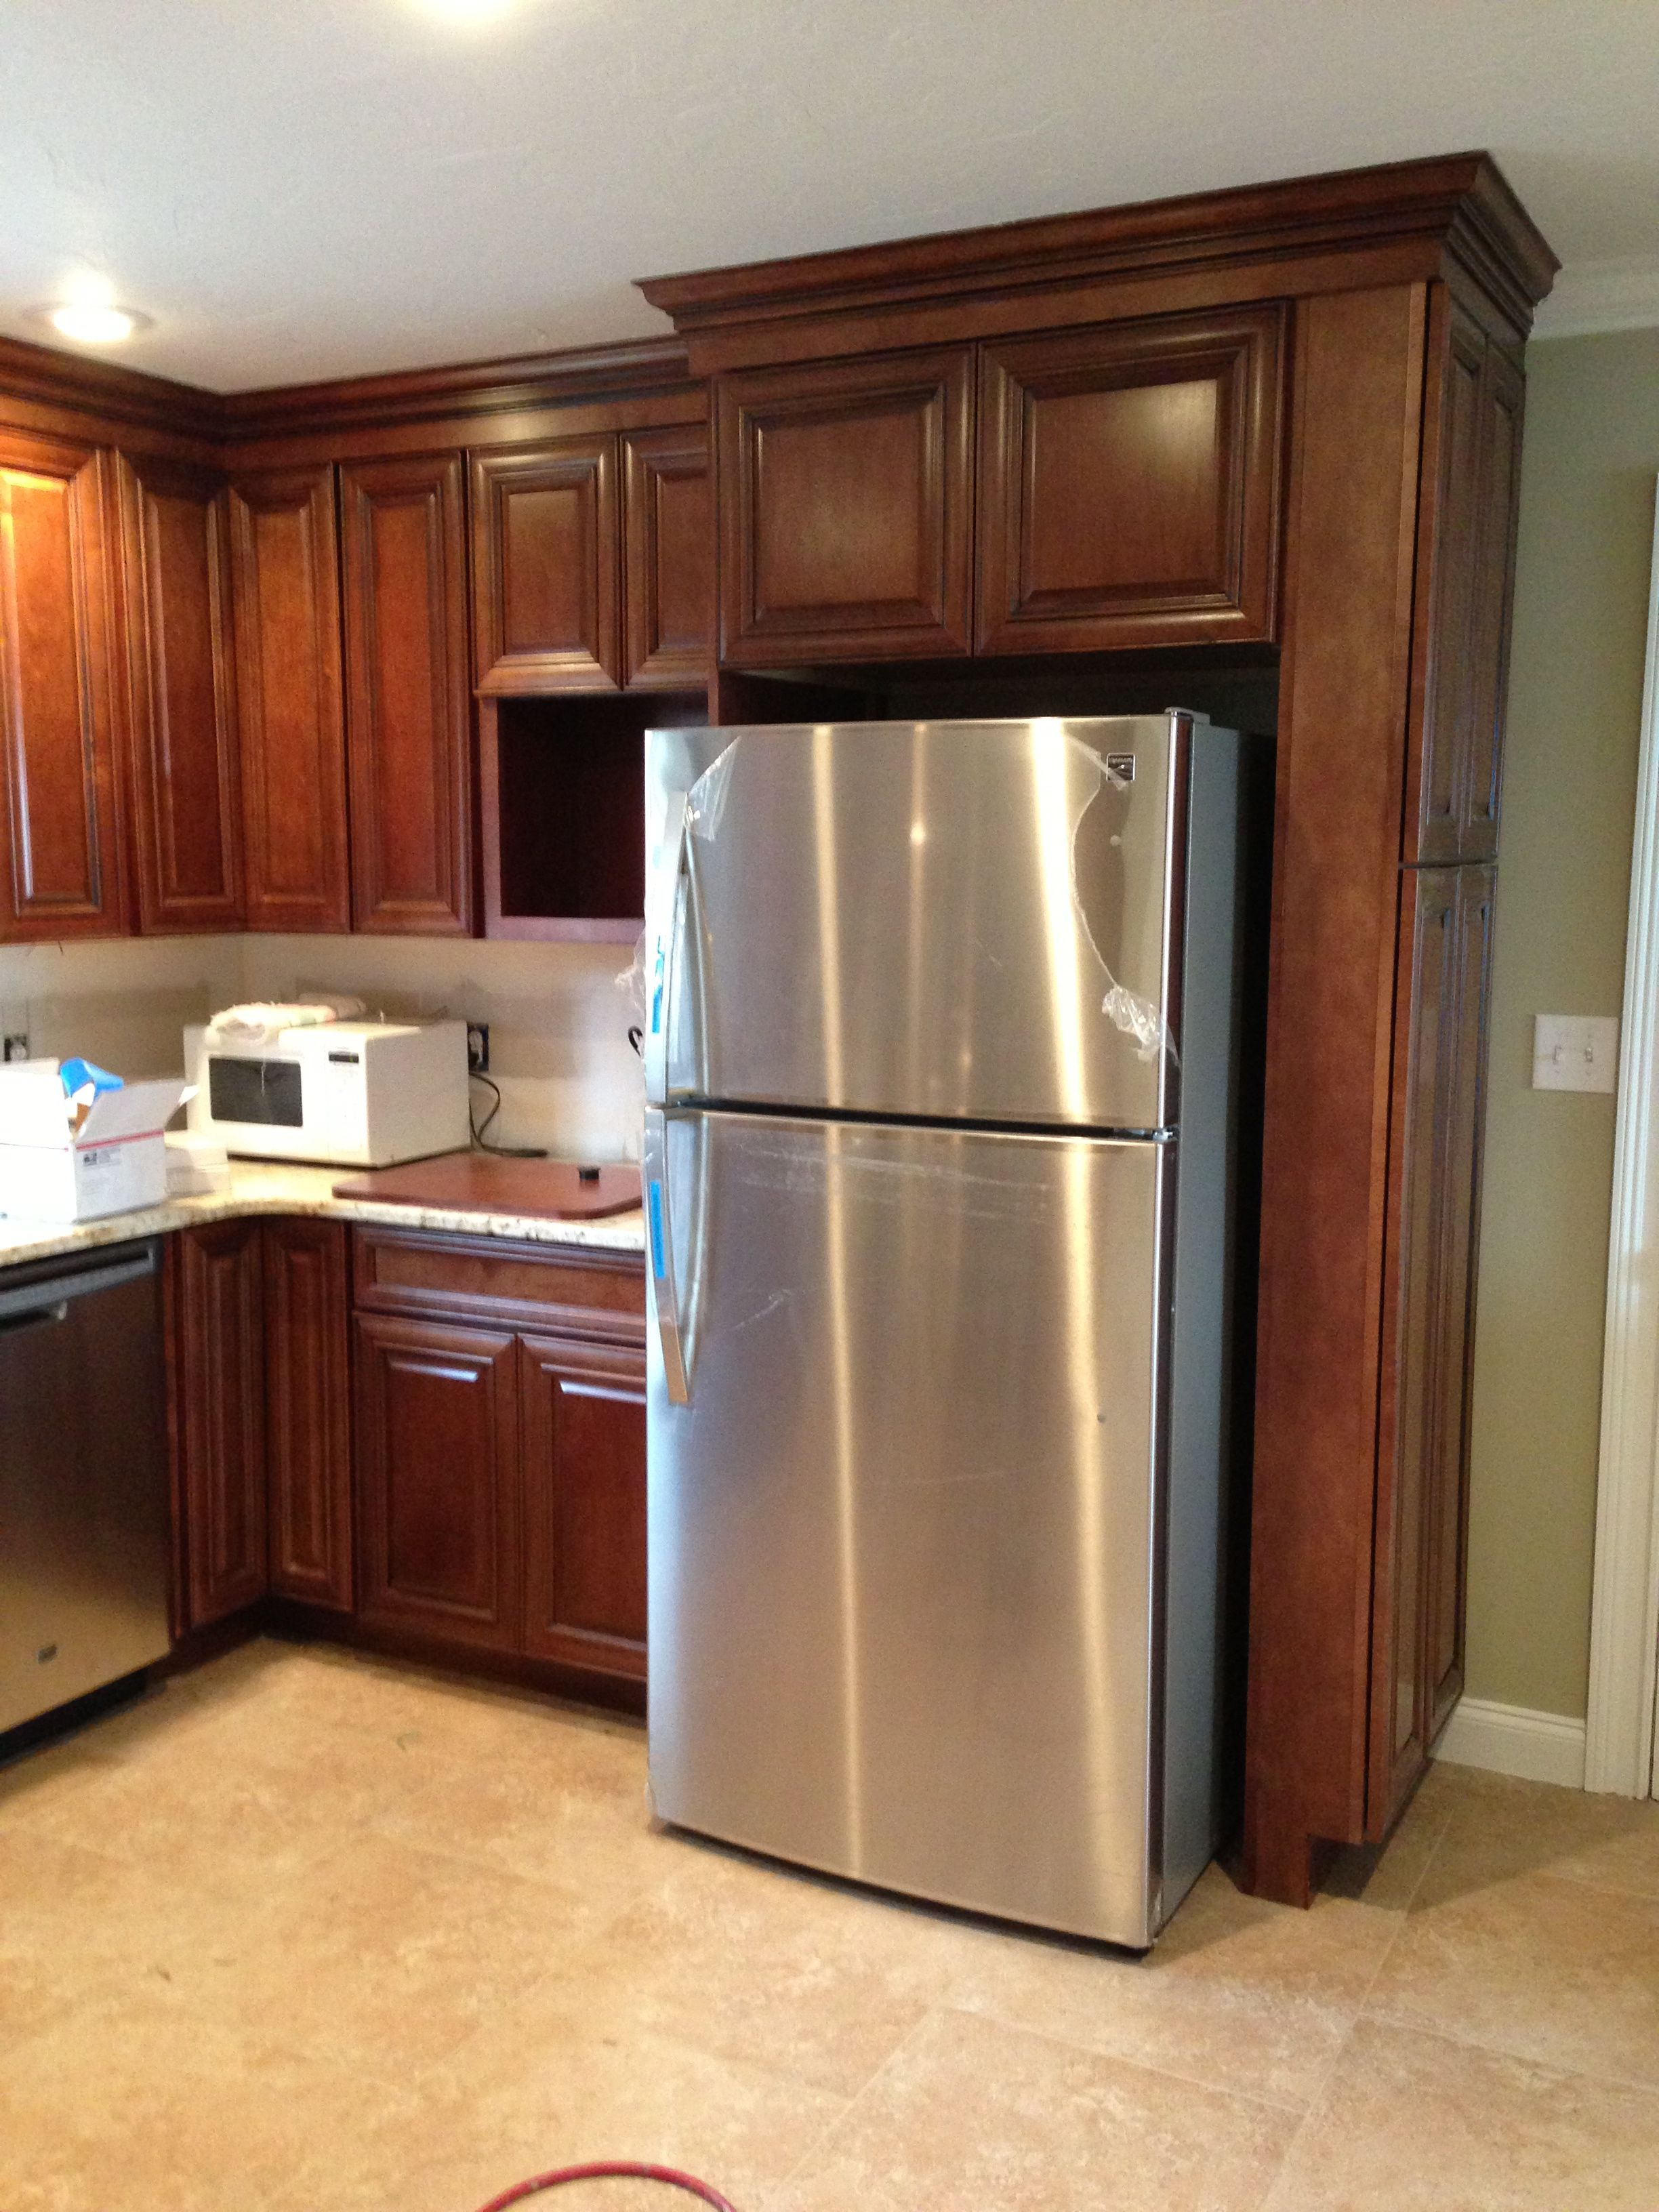 Broom Closet On The Side Of The Fridge New Kitchen Inspiration Refrigerator Panels Narrow Pantry